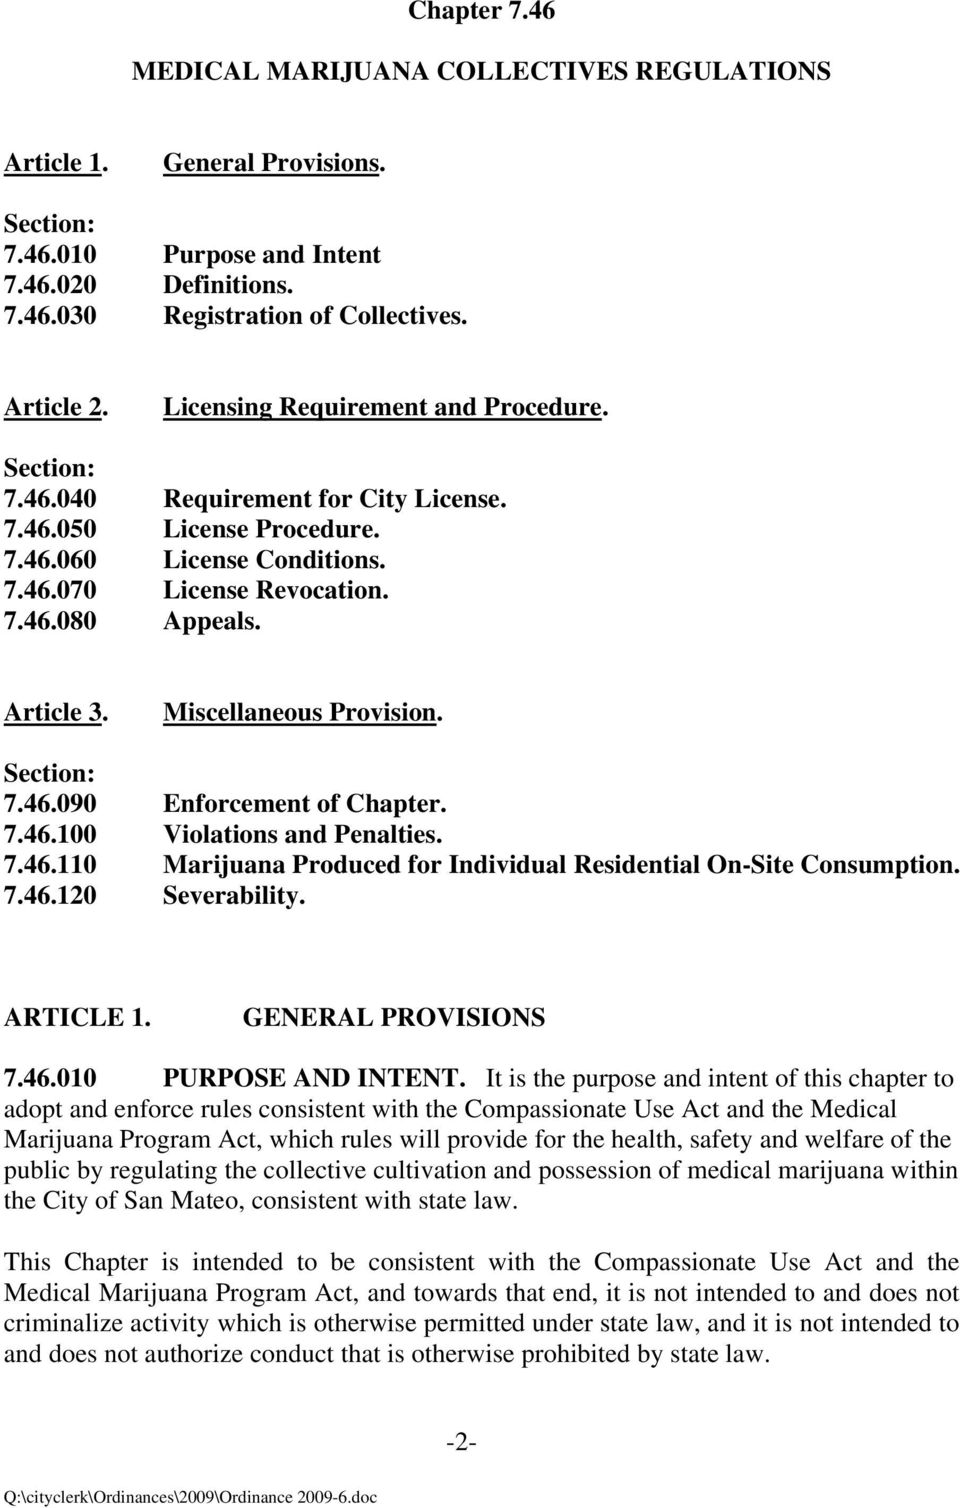 Miscellaneous Provision. Section: 7.46.090 Enforcement of Chapter. 7.46.100 Violations and Penalties. 7.46.110 Marijuana Produced for Individual Residential On-Site Consumption. 7.46.120 Severability.